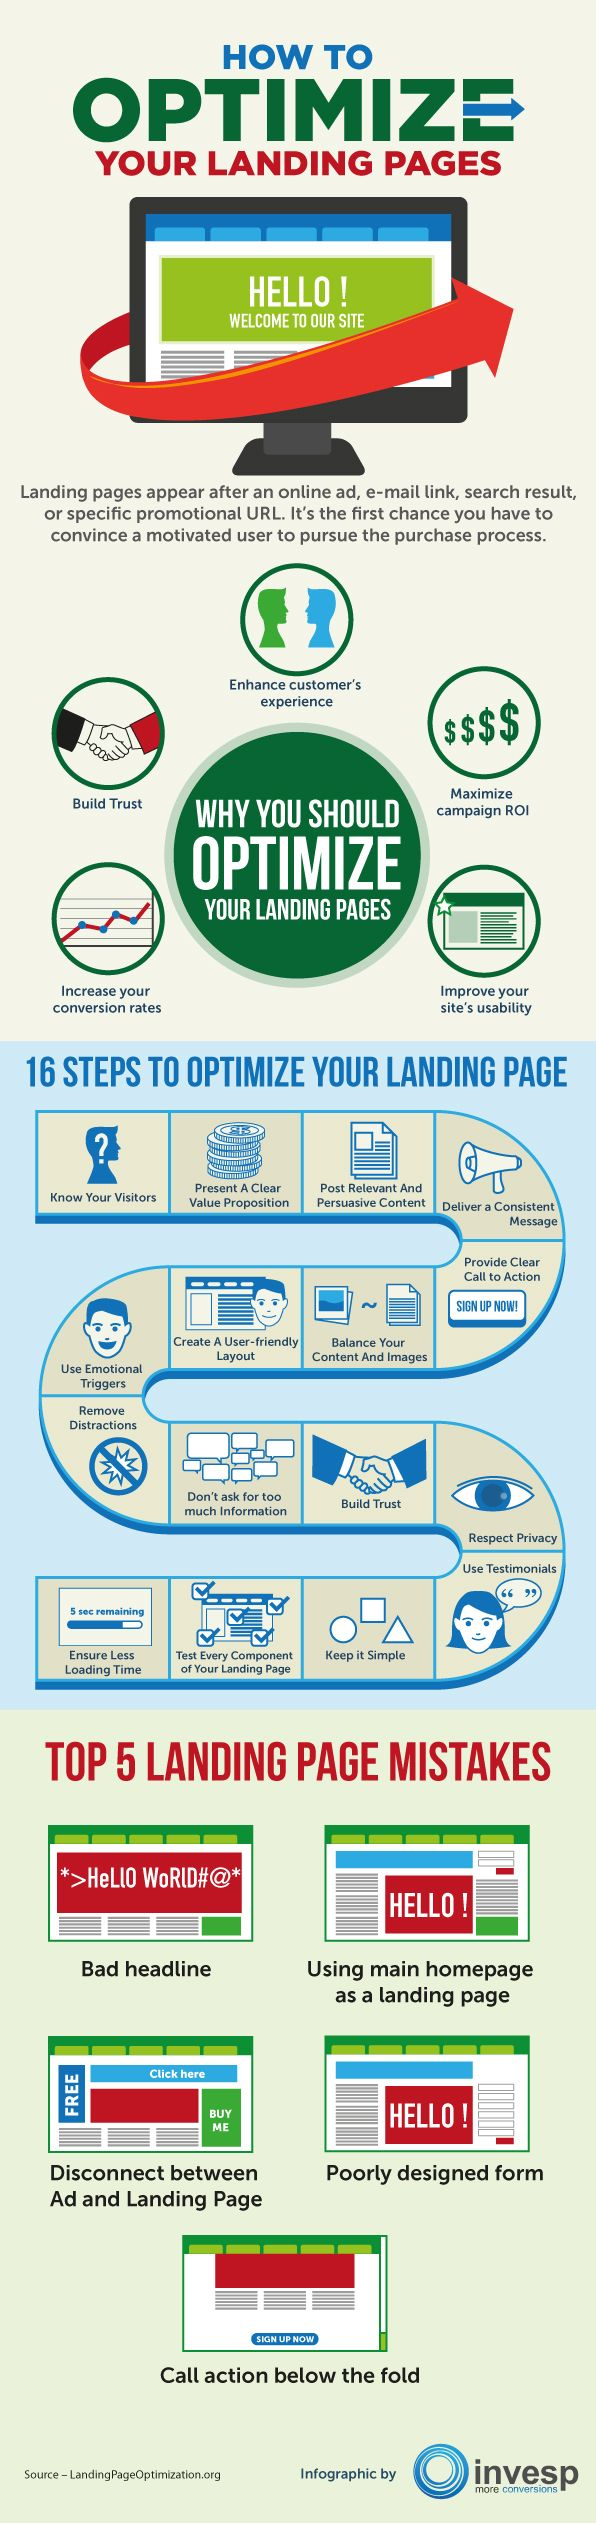 Landing page optimization for conversions... #SEO #LocalSearch #SearchEngineOptimization